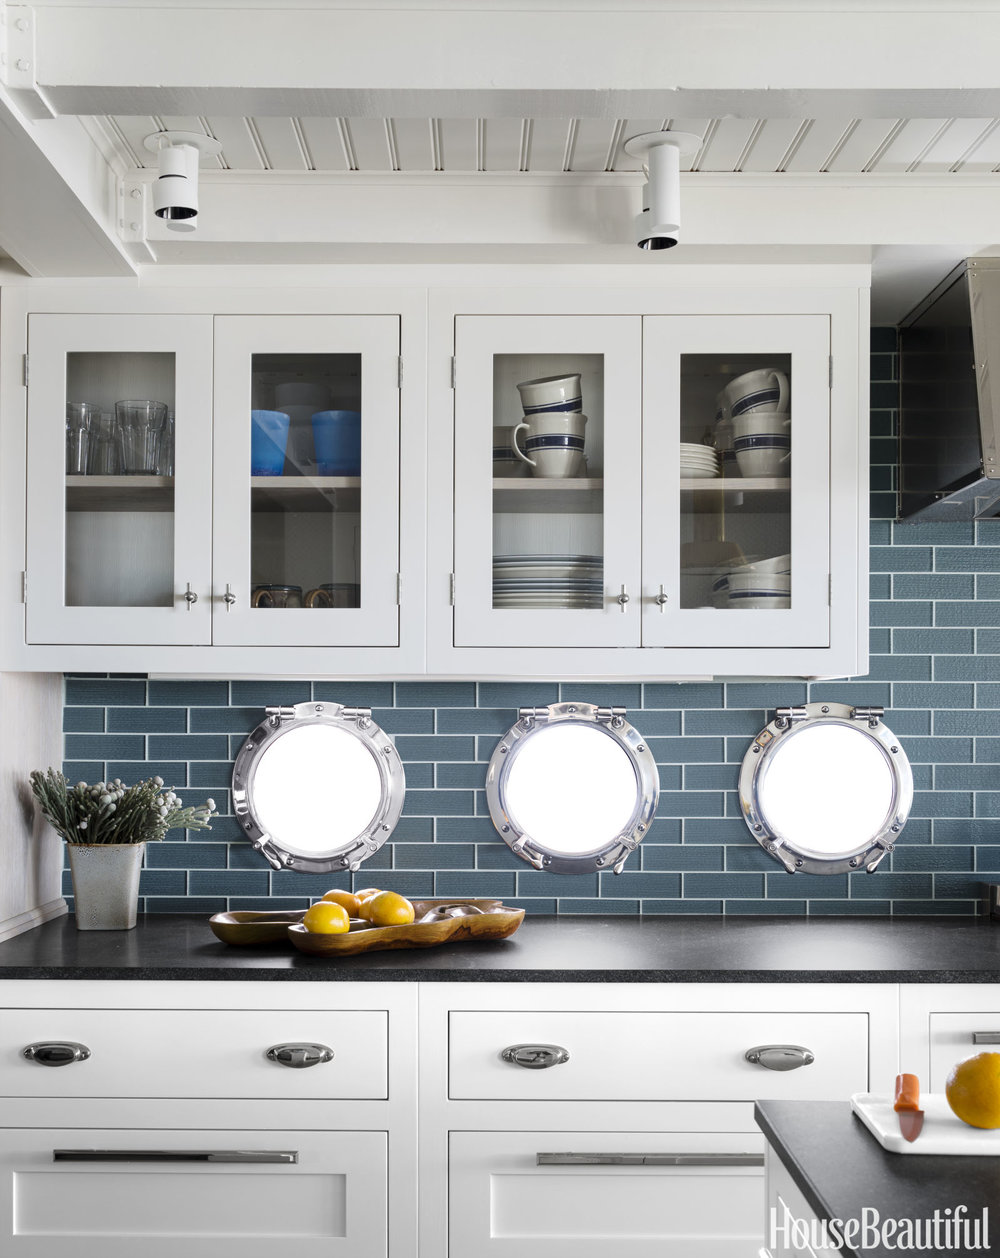 How awesome are these porthole windows in the kitchen?